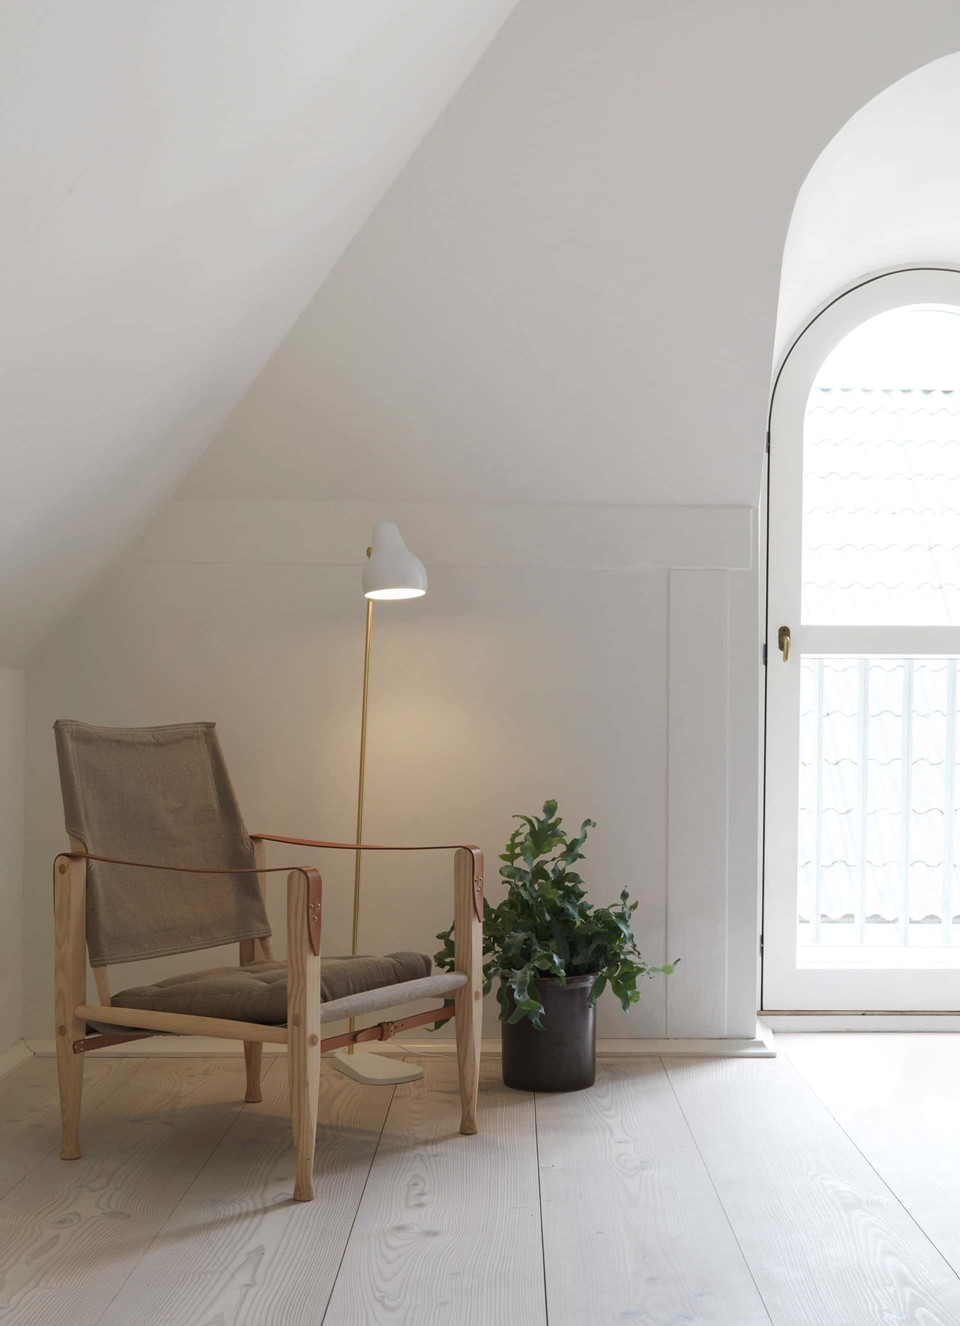 douglas fir floor lye white soap underfloor heating chair dinesen country home.jpg